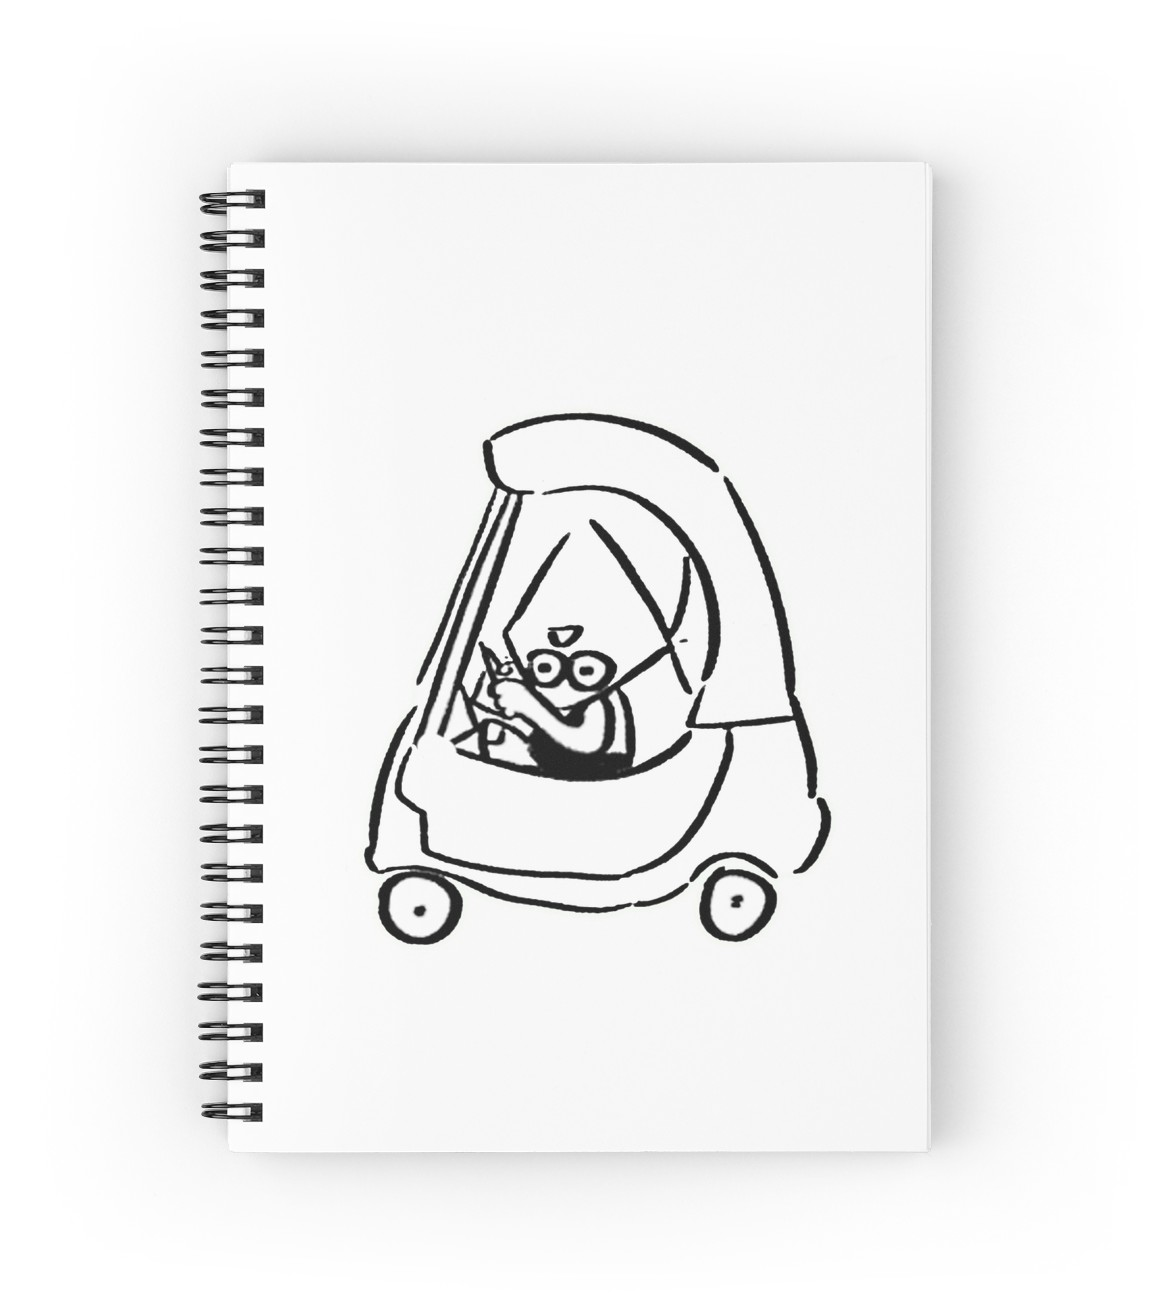 1171x1313 Grand Theft Peridot Spiral Notebooks By Triangle Mother Redbubble